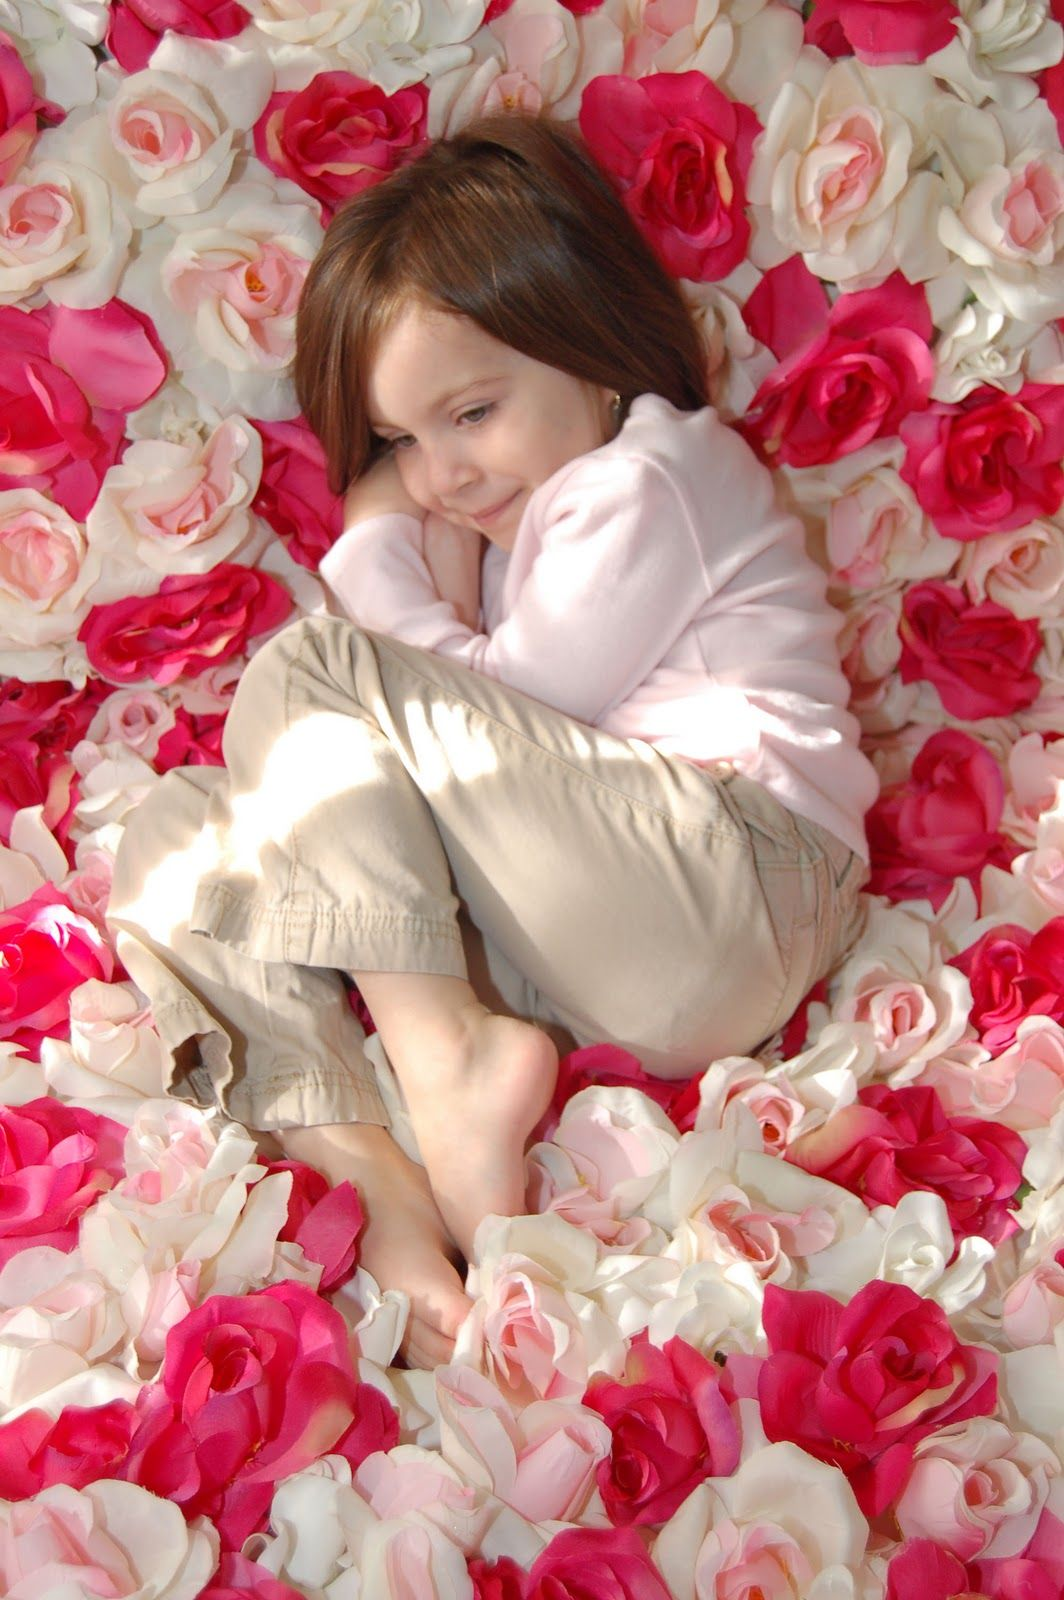 Silk flowers sewn or hot glued onto fabric  the Flower Blanket that is used for baby girl